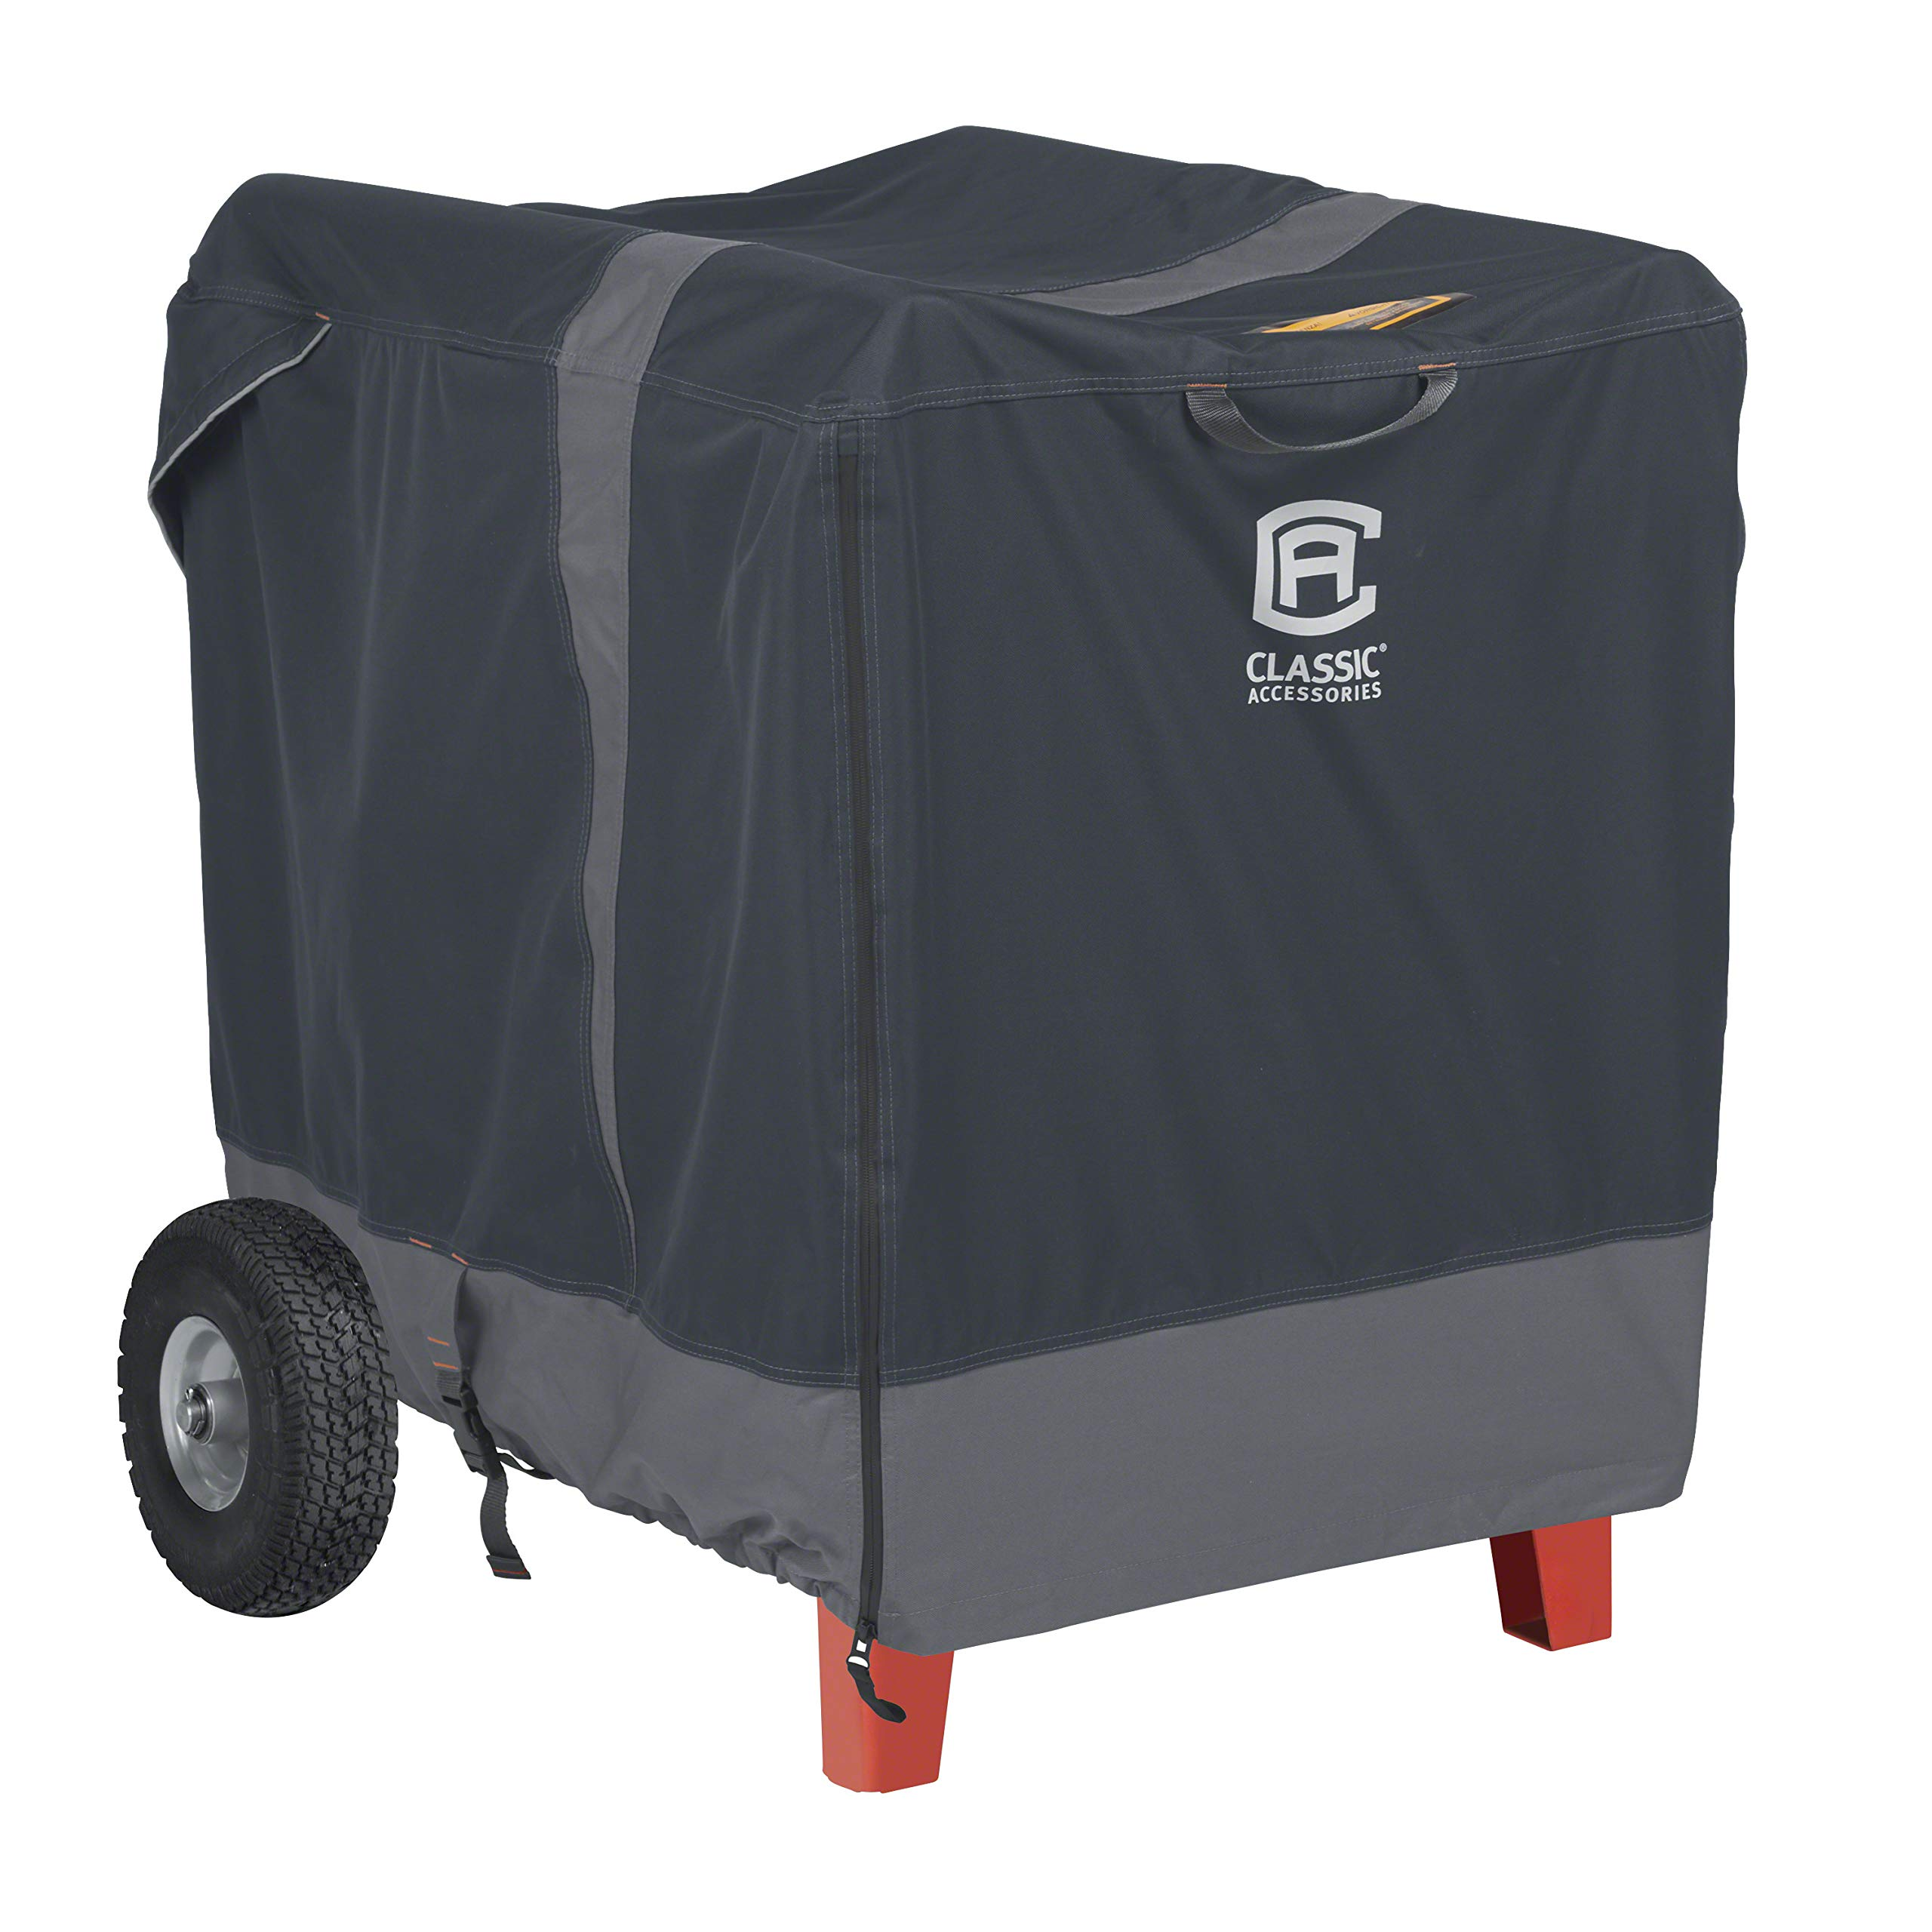 Classic Accessories StormPro RainProof Heavy Duty Generator Cover, XX-Large